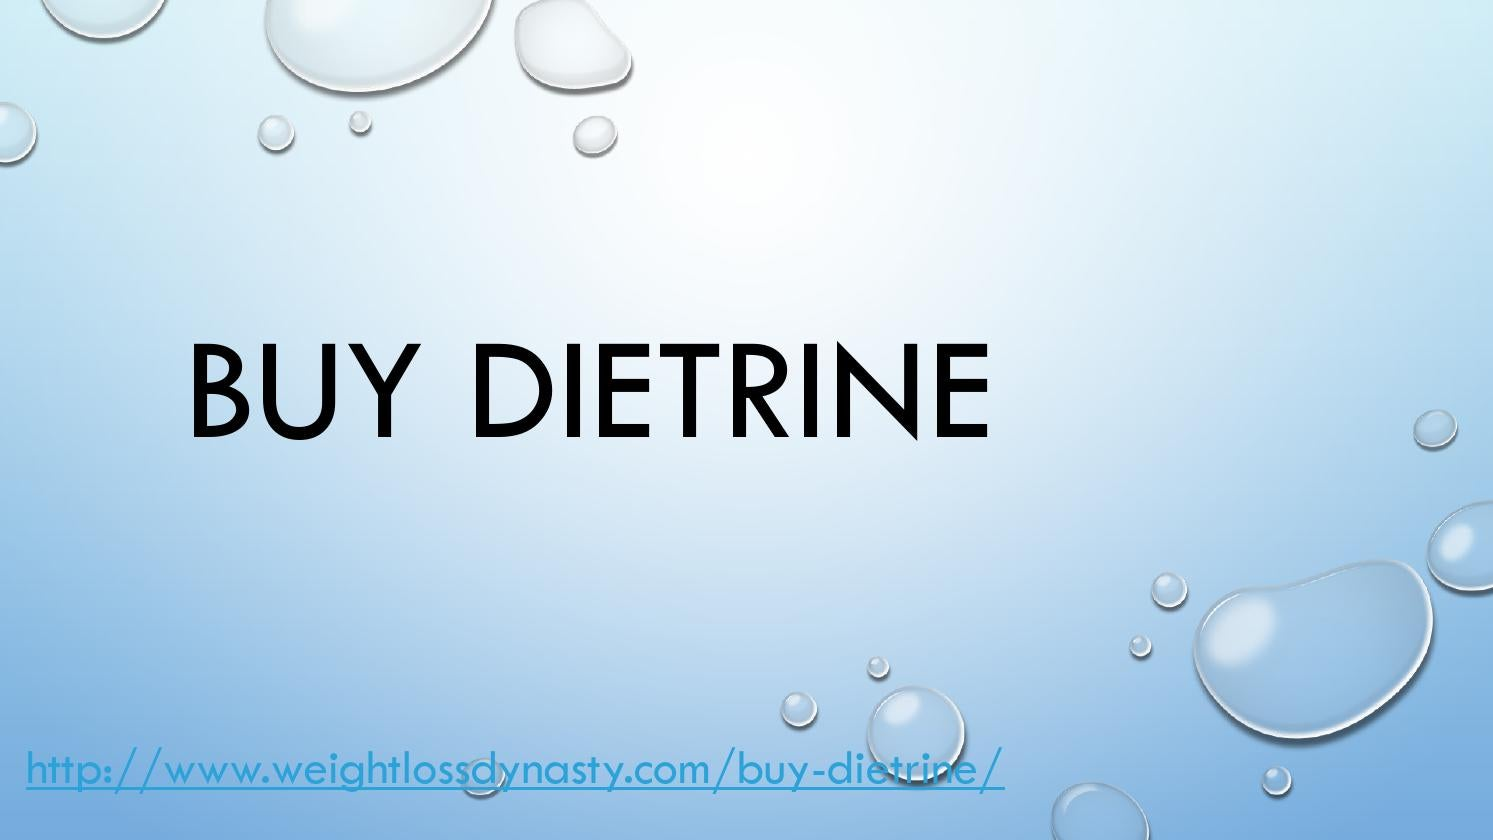 Buy Dietrine By Kumalashny Issuu